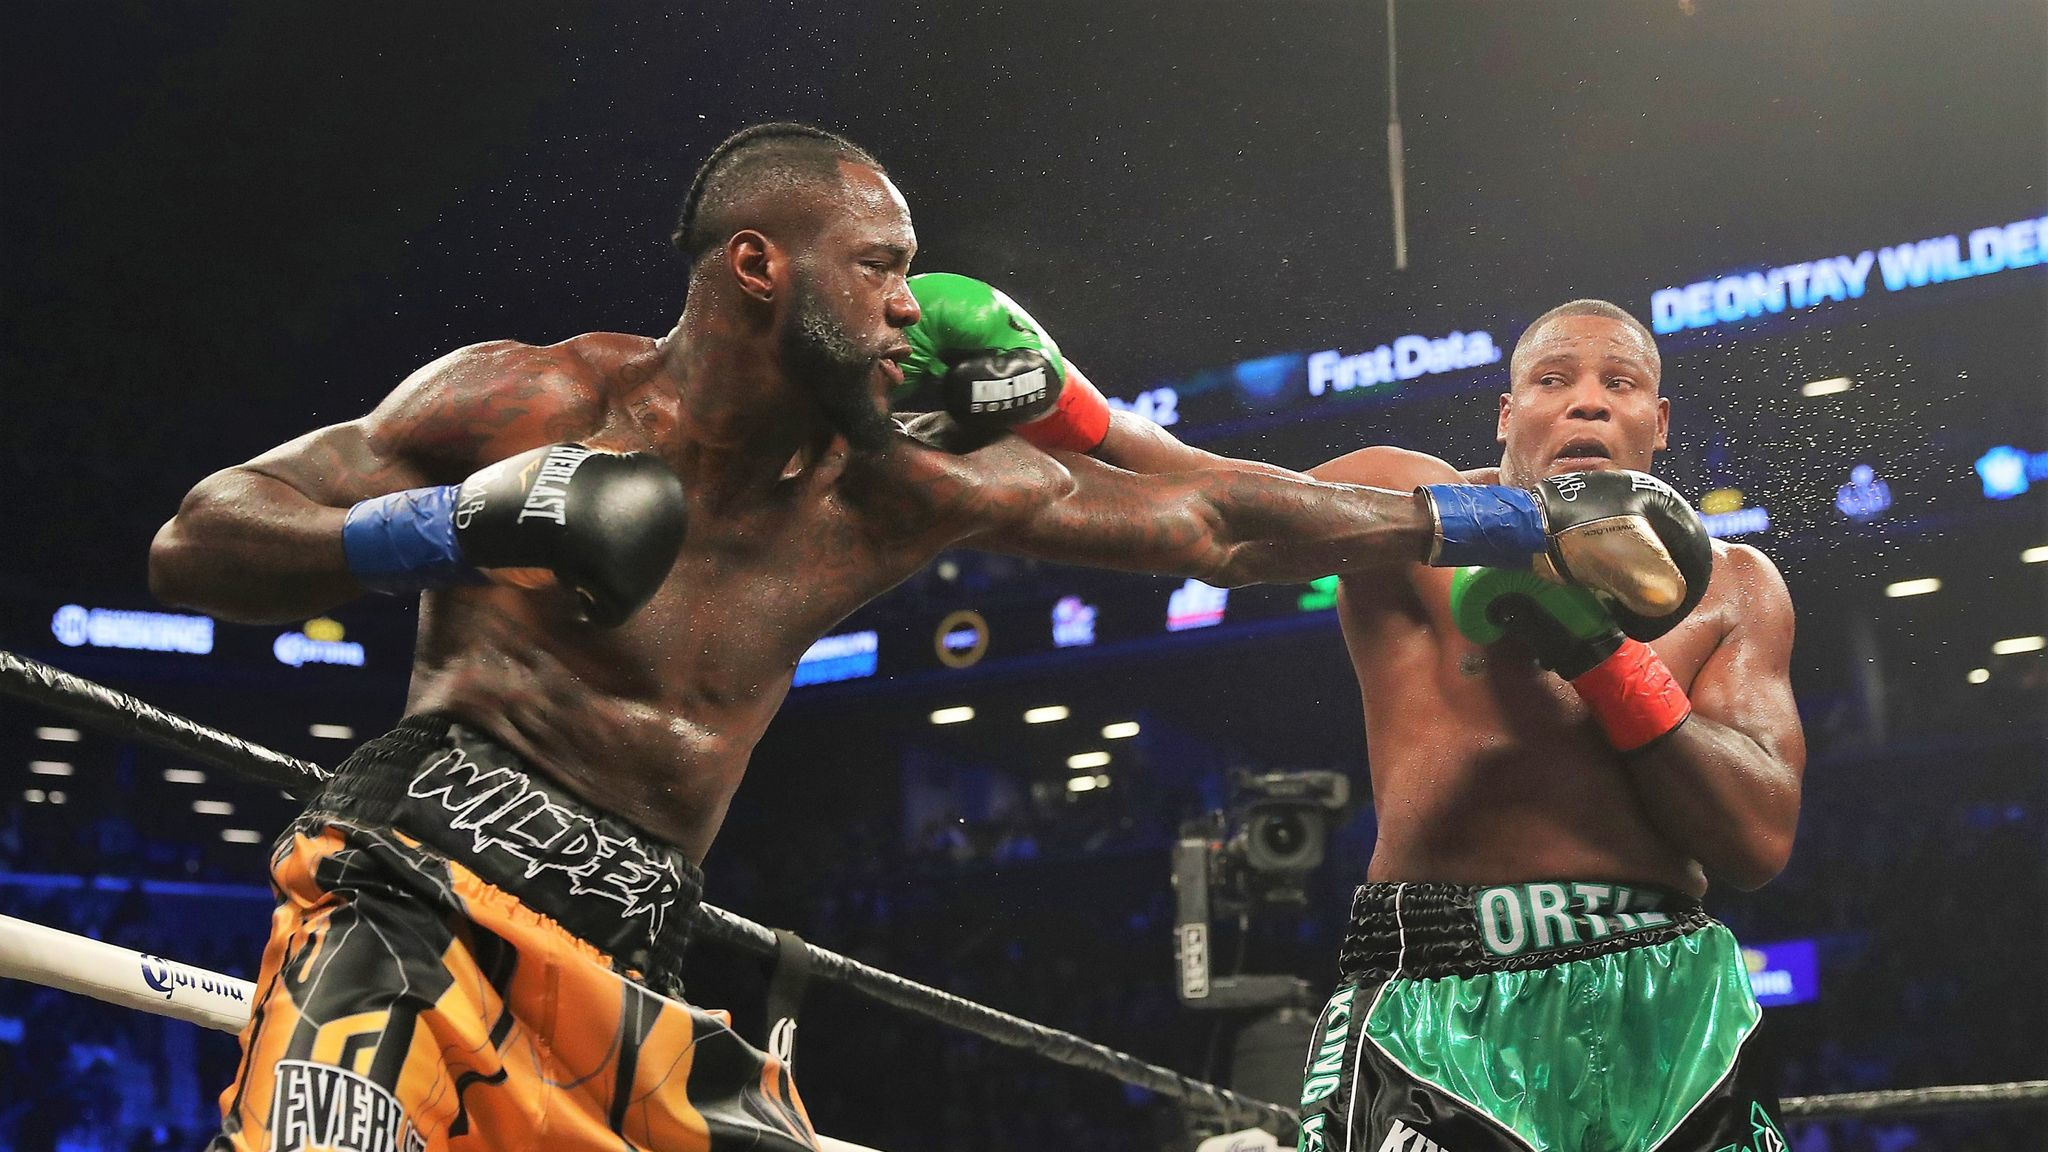 Wilder vs Ortiz II: Deontay Wilder's Premier Boxing Champions rematch with Luis Ortiz is live on Sky Sports